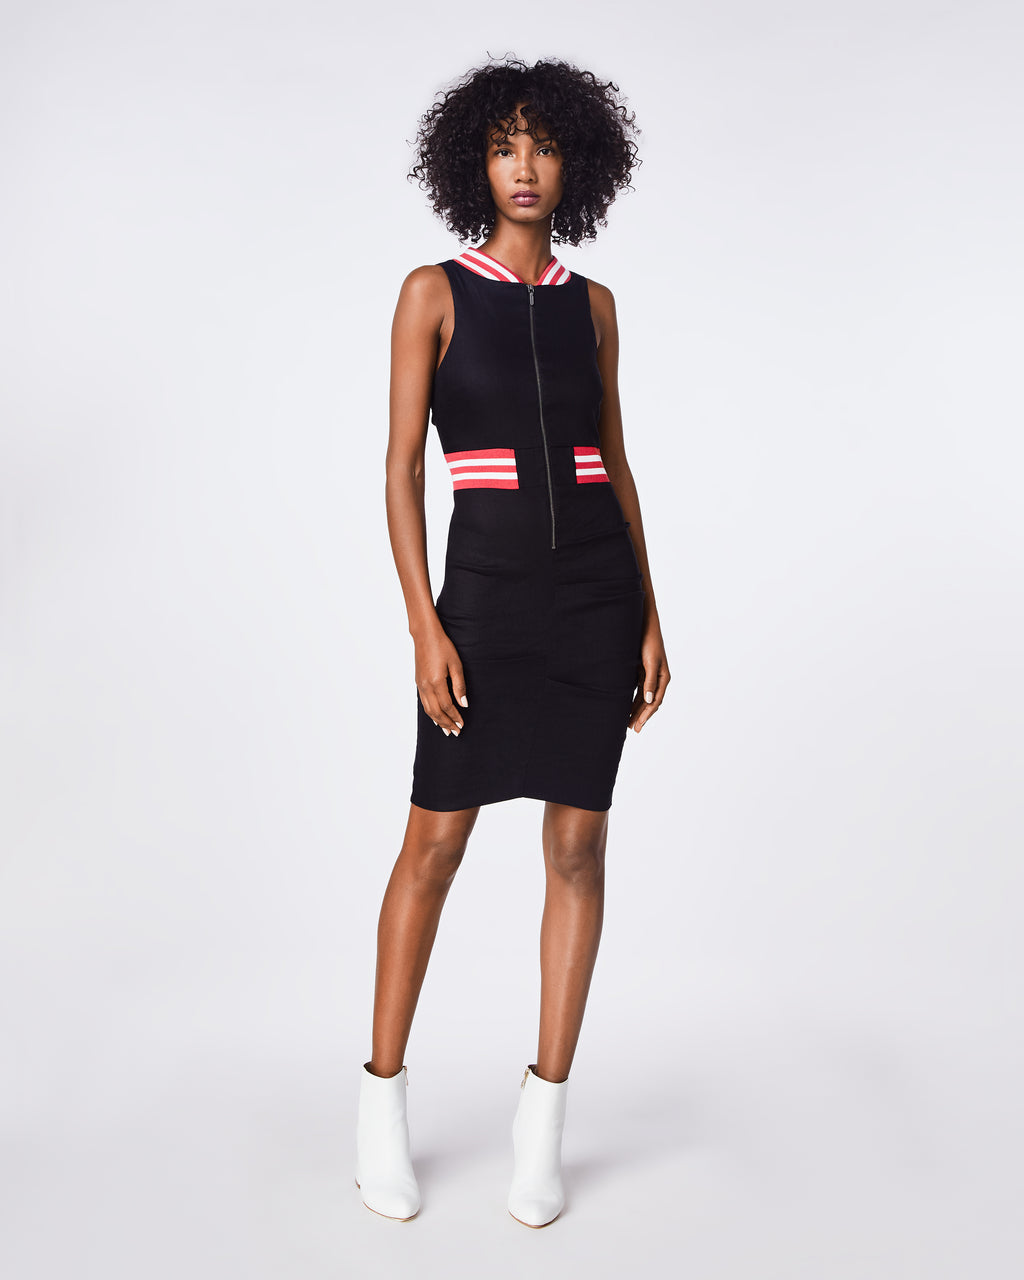 BJ10198 - STRETCH LINEN ZIP DRESS - dresses - short - THIS FITTED, SLEEVELESS DRESS FEATURES RIBBING ALONG THE NECKLINe AND WAIST. THE STRIPED RIBBING DETAIL GIVEs THIS DRESS THE ULTIMATE SPORTS LUXE LOOK. FULLY LINED.